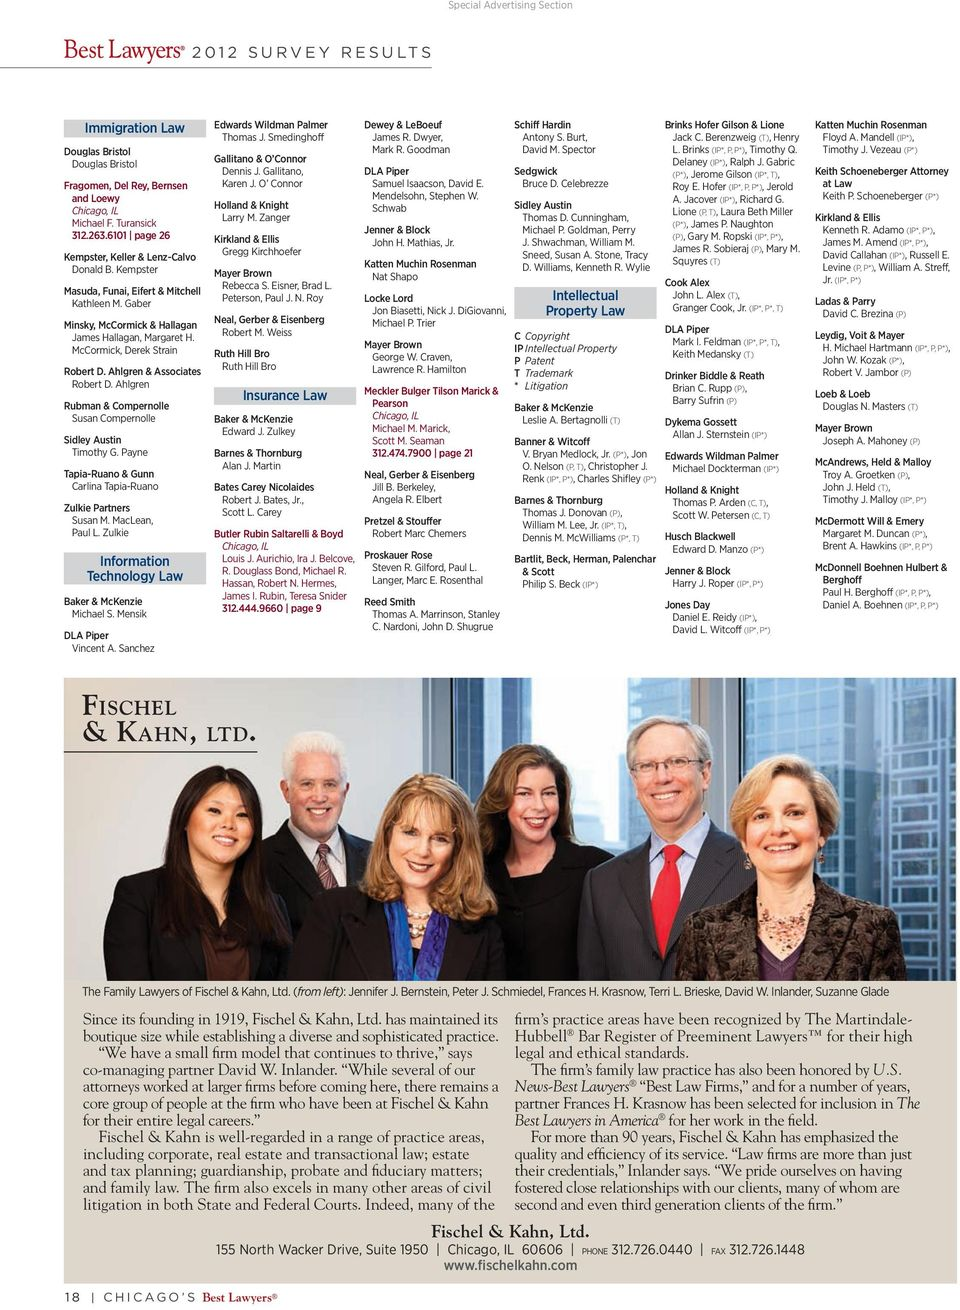 Ahlgren Rubman & Compernolle Susan Compernolle Timothy G. Payne Tapia-Ruano & Gunn Carlina Tapia-Ruano Zulkie Partners Susan M. MacLean, Paul L. Zulkie Information Technology Law Michael S.